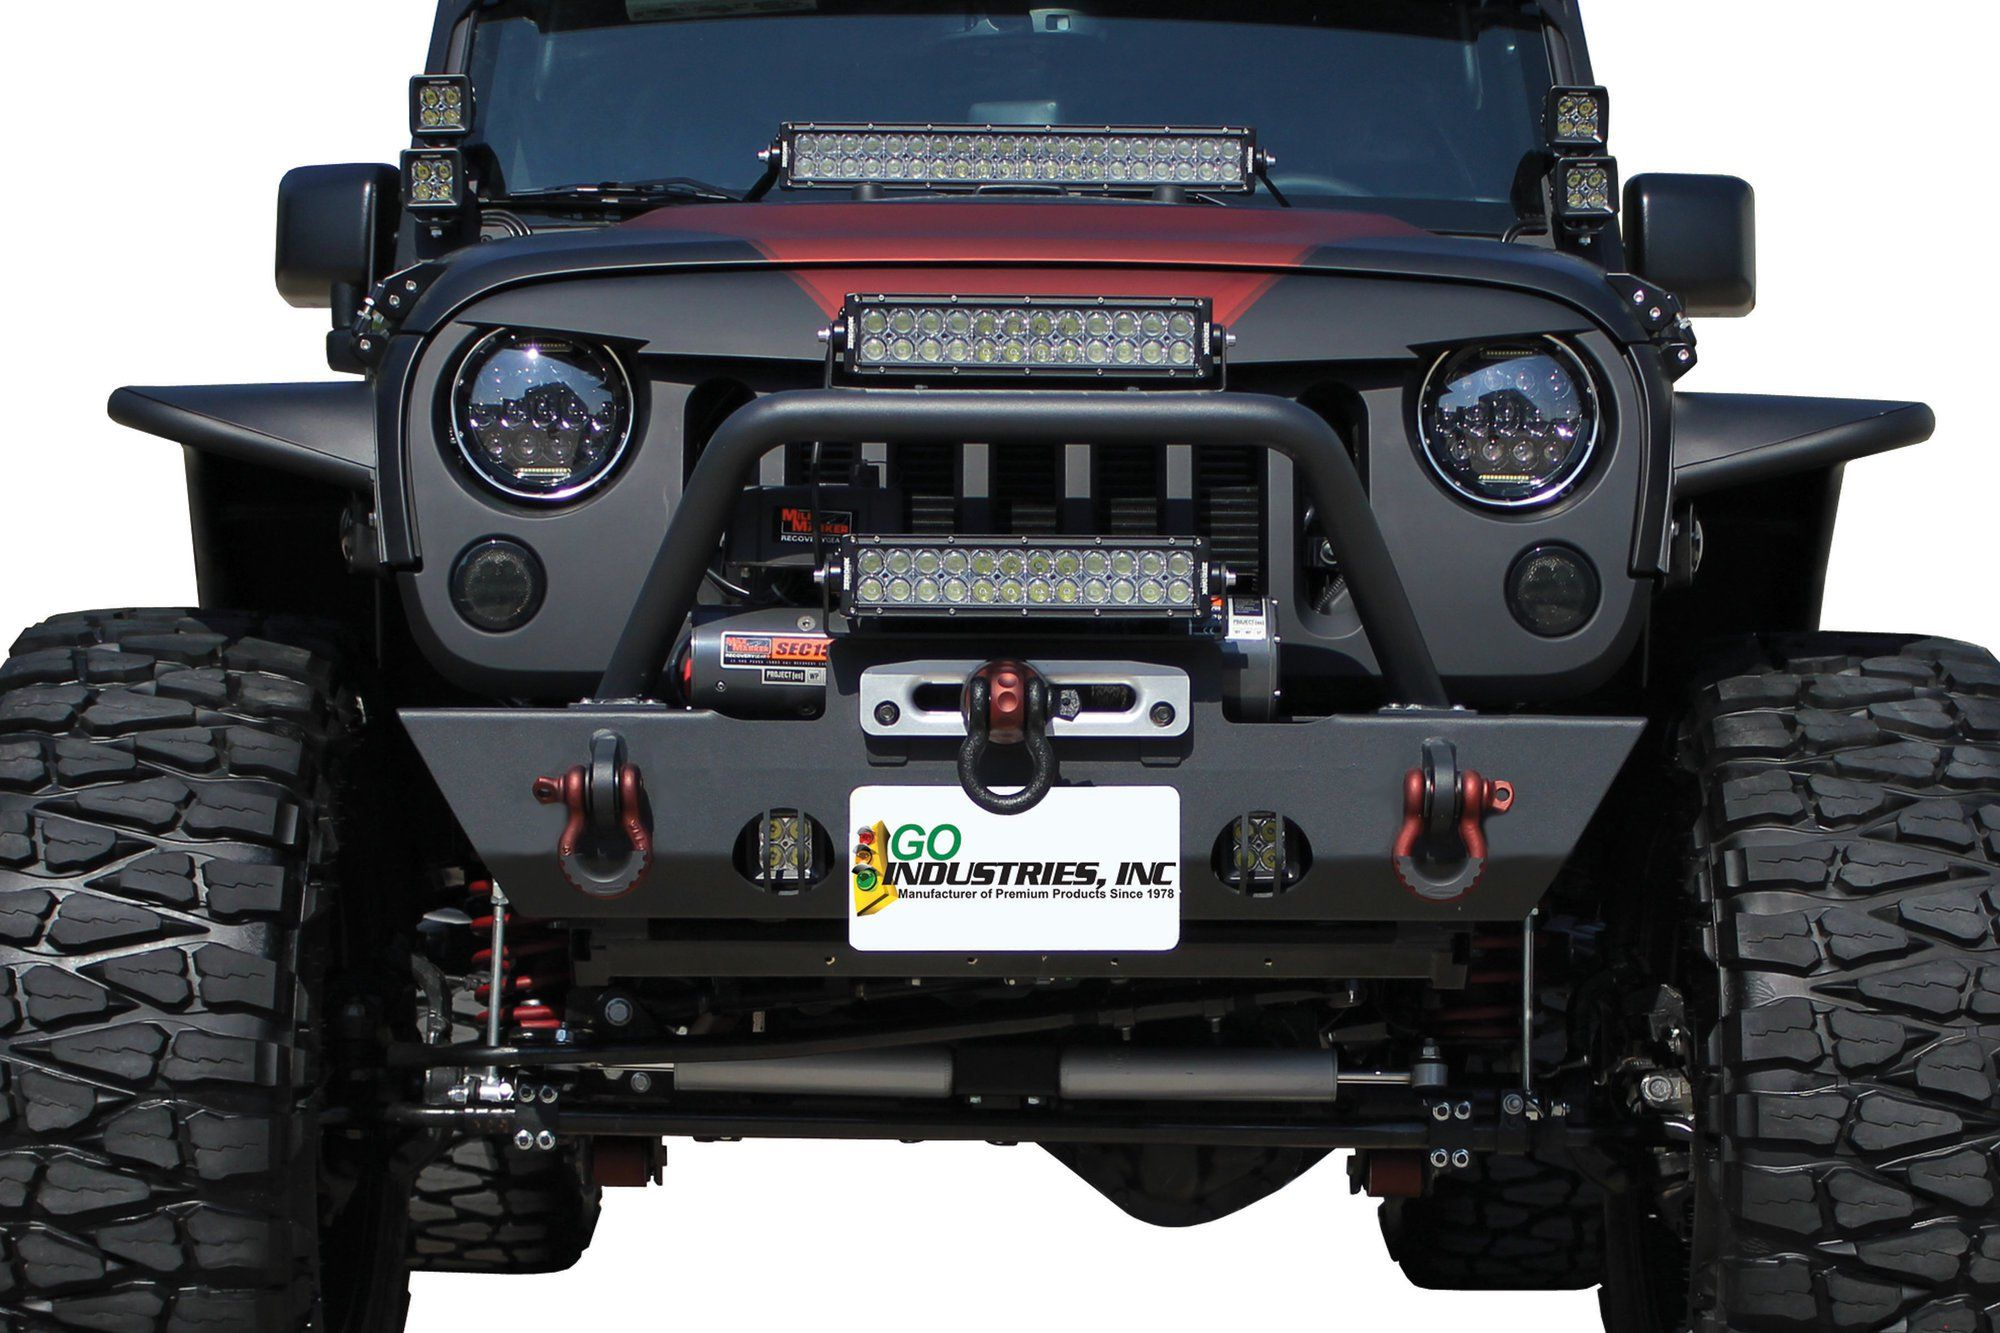 This Front Bumper Is Laser Cut From 3 16 Steel Plate Material And Jeep Wrangler Oem Fog Lights Will Provide Ample Protection For The End Of Your Jk